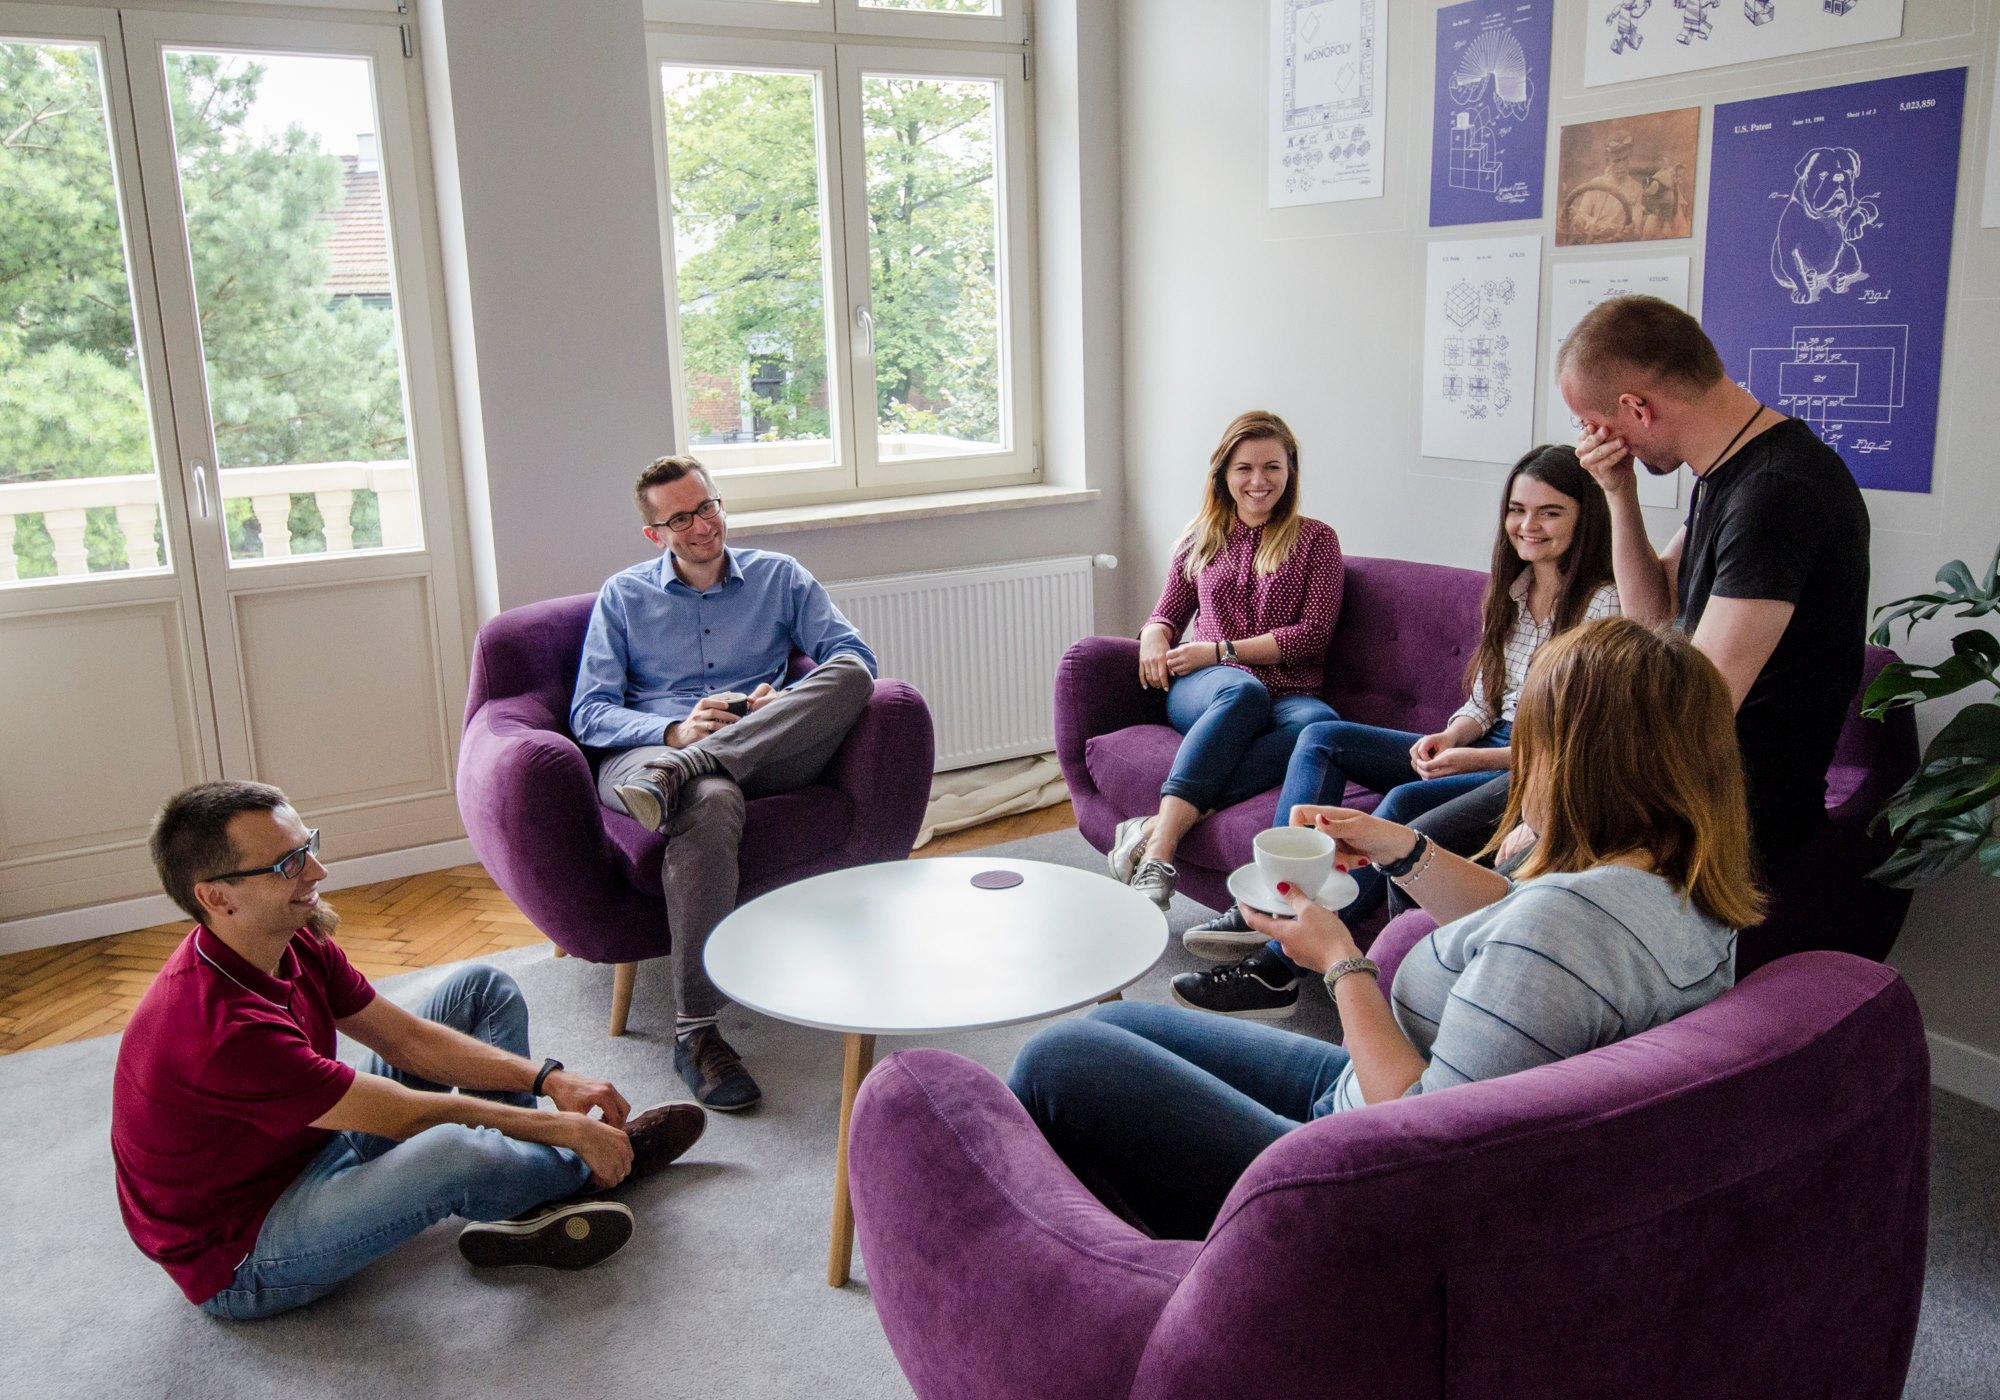 people sitting on armchairs and a couch, talking lively, lauching hard